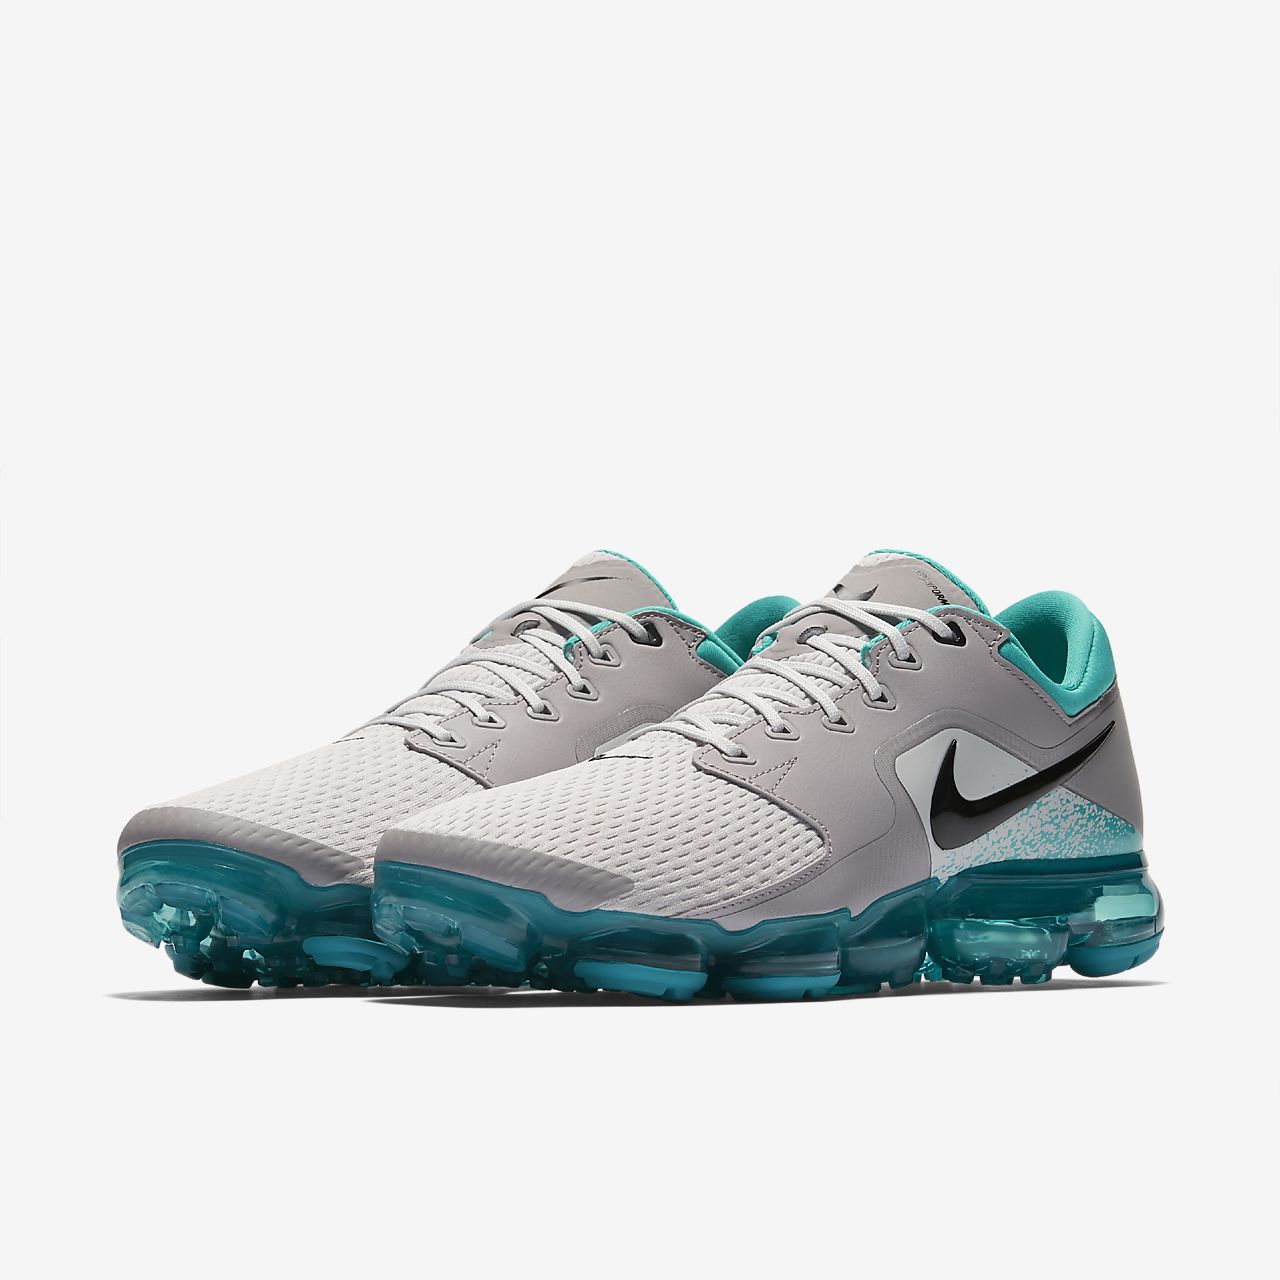 Nike Air Vapormax Vast Grey Black Men Running Shoes Sneaker AH9046010